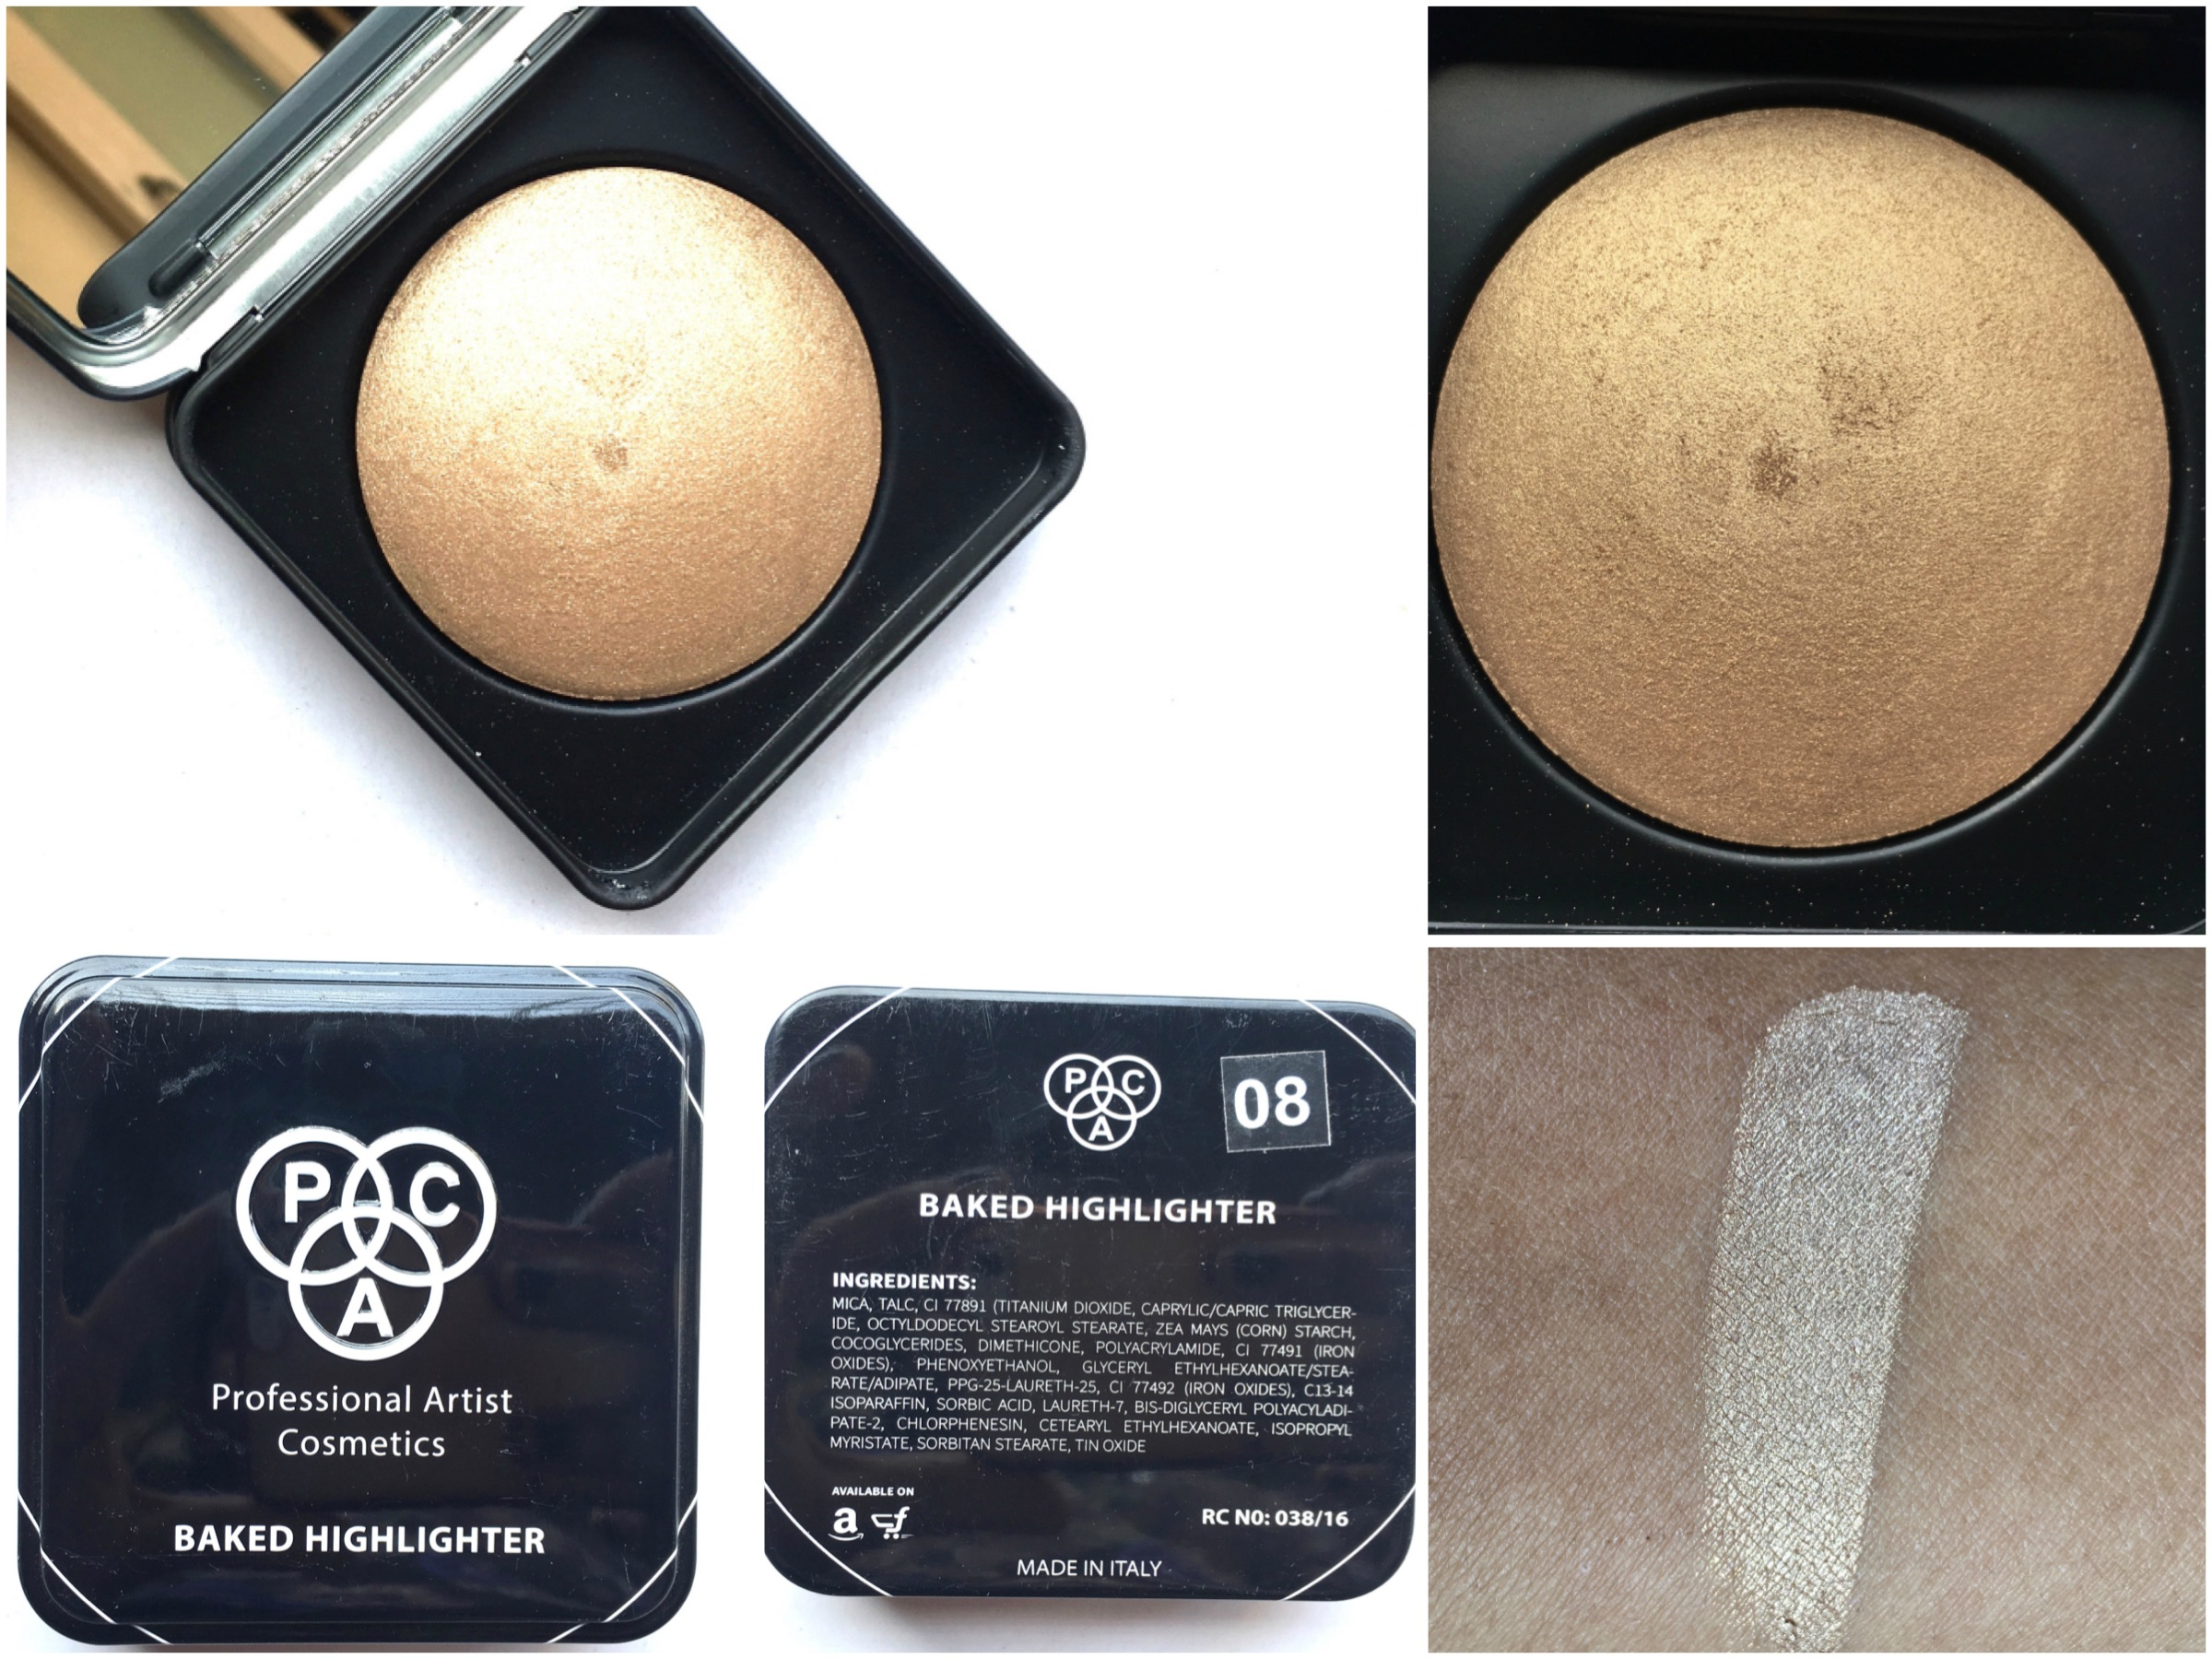 Pac Cosmetics Baked Highlighter 08 Review Swatches